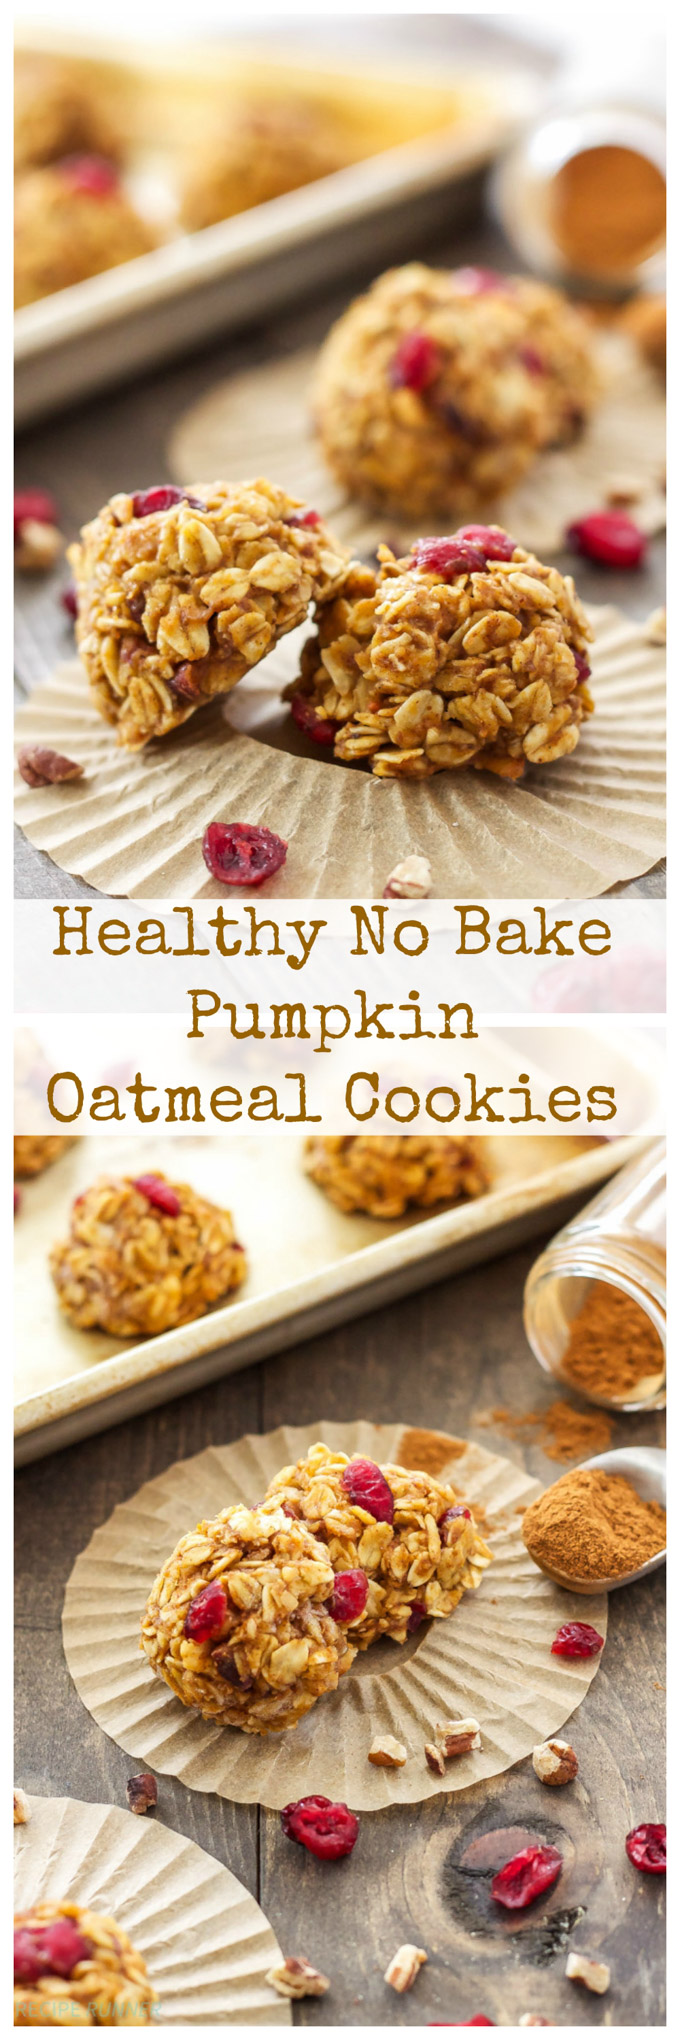 Healthy No Bake Pumpkin Oatmeal Cookies | These healthy pumpkin cookies are the perfect no bake fall treat!